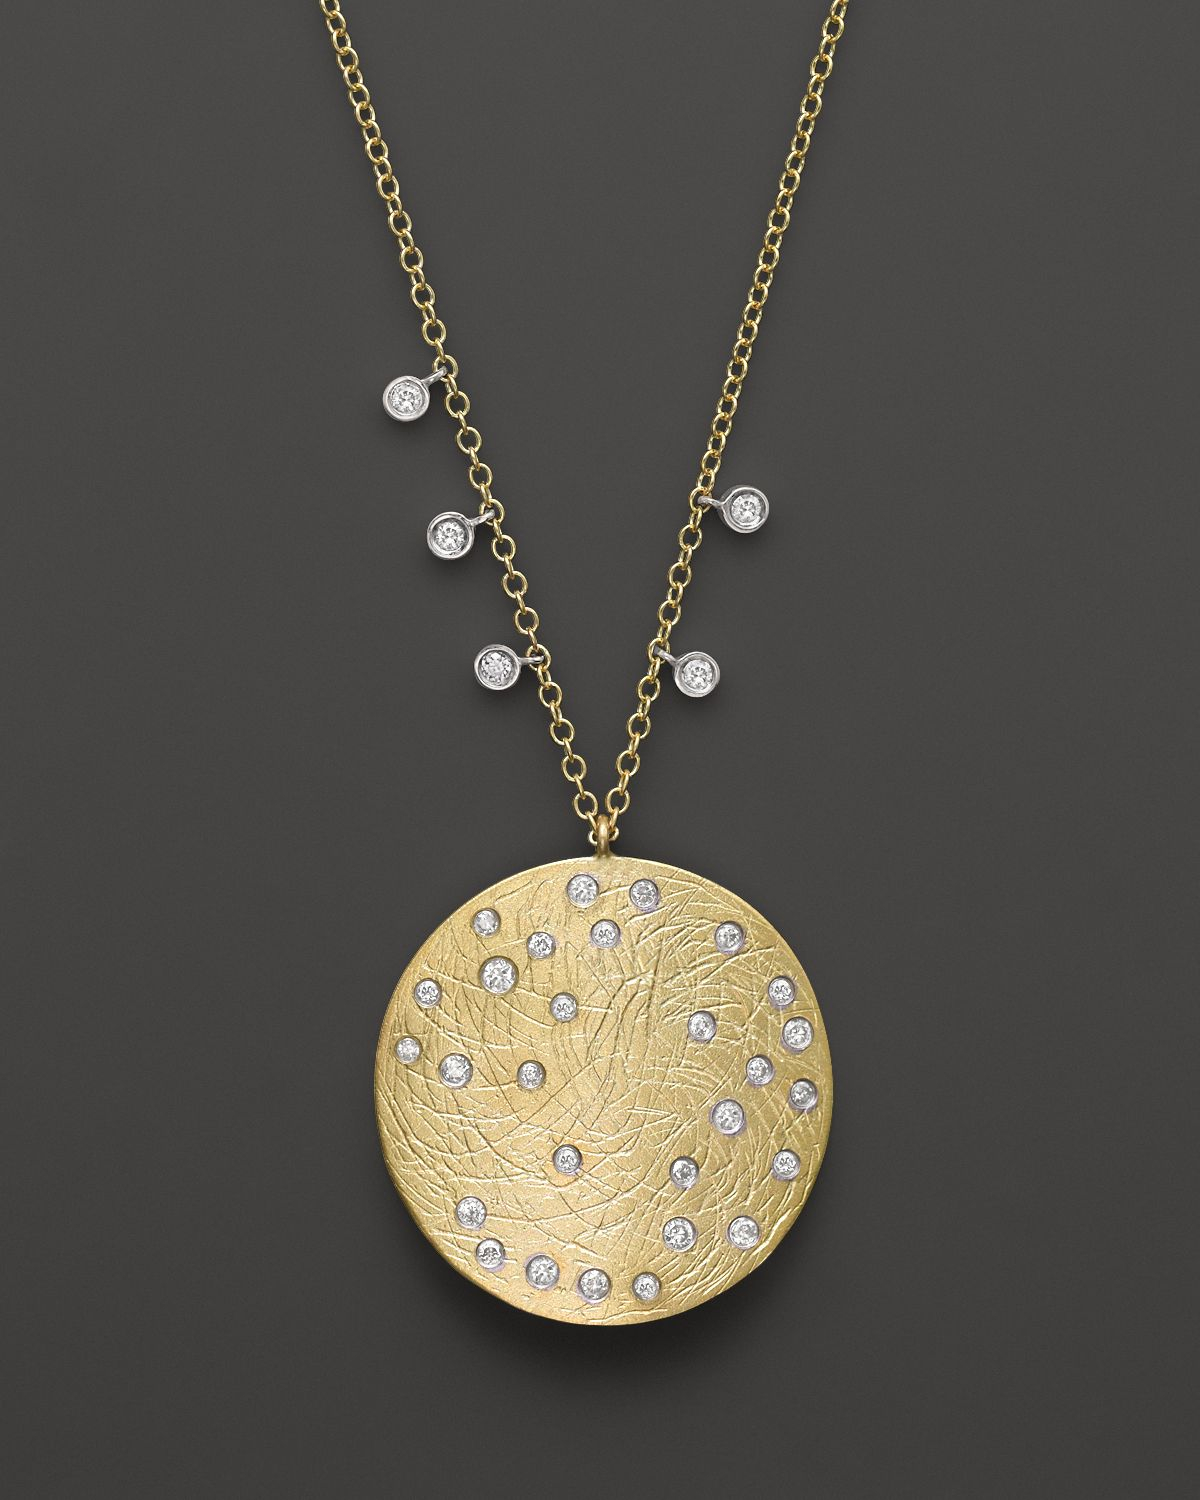 Meira T 14k Yellow Amp White Gold Large Disc Necklace 16